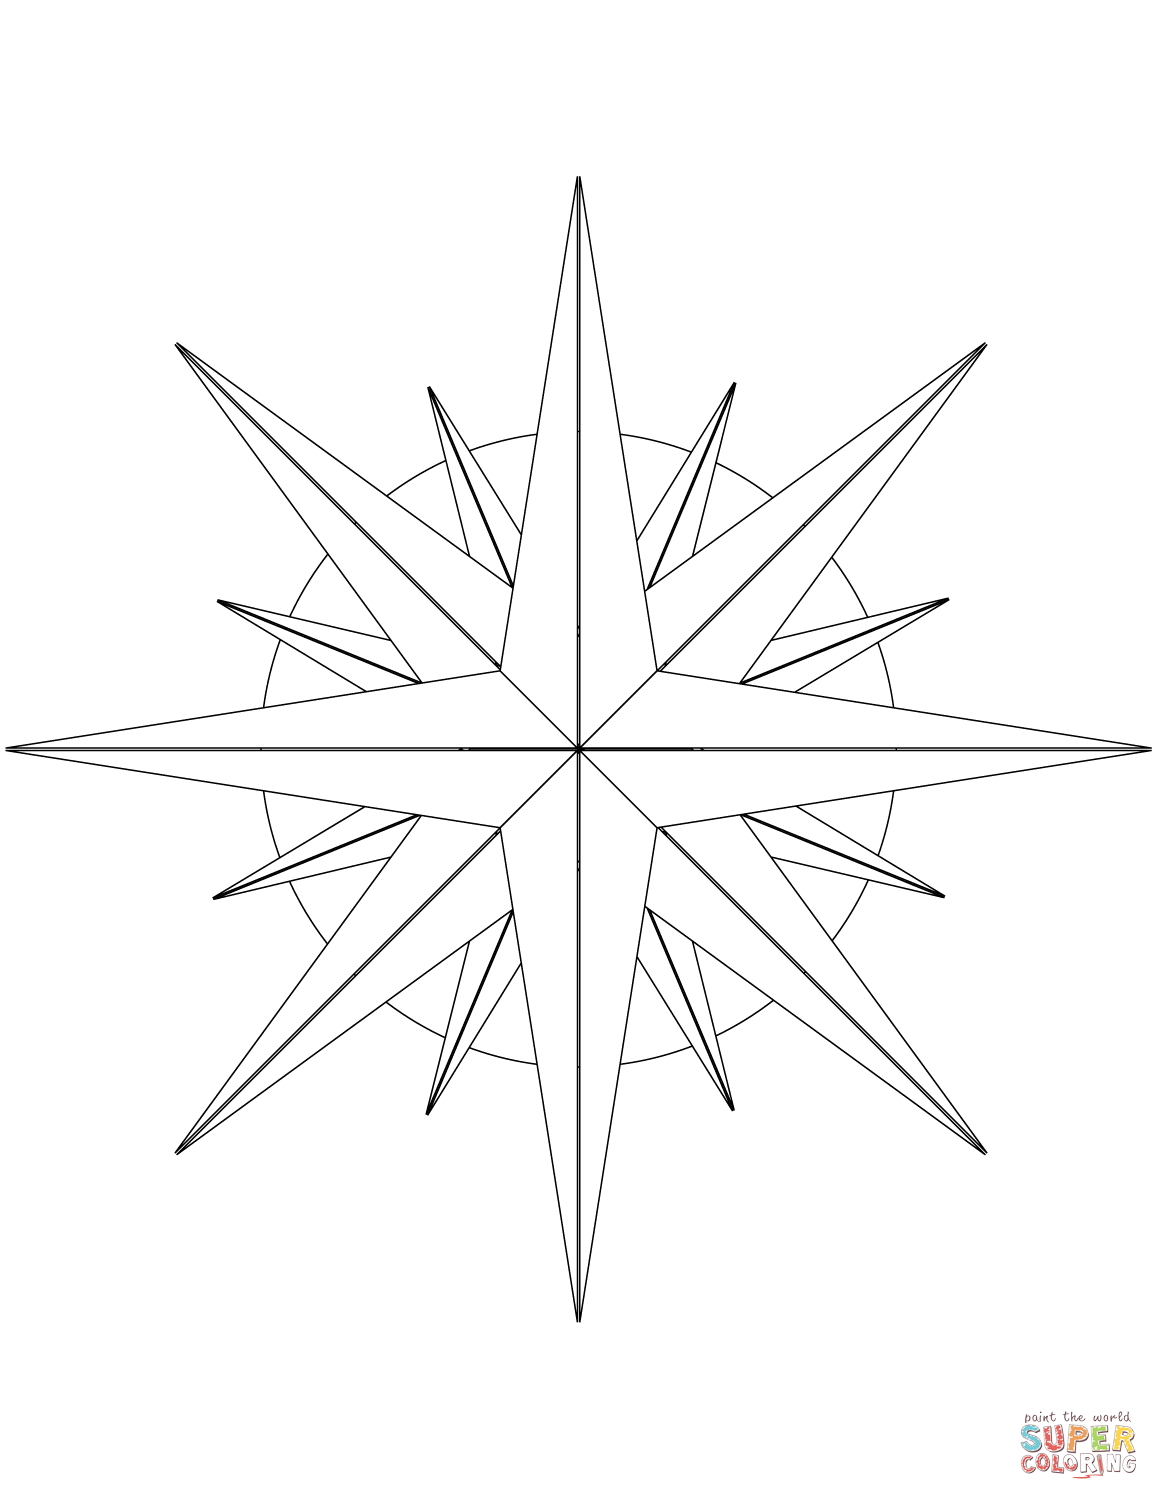 Compass Rose Drawing At Getdrawings Com Free For Personal